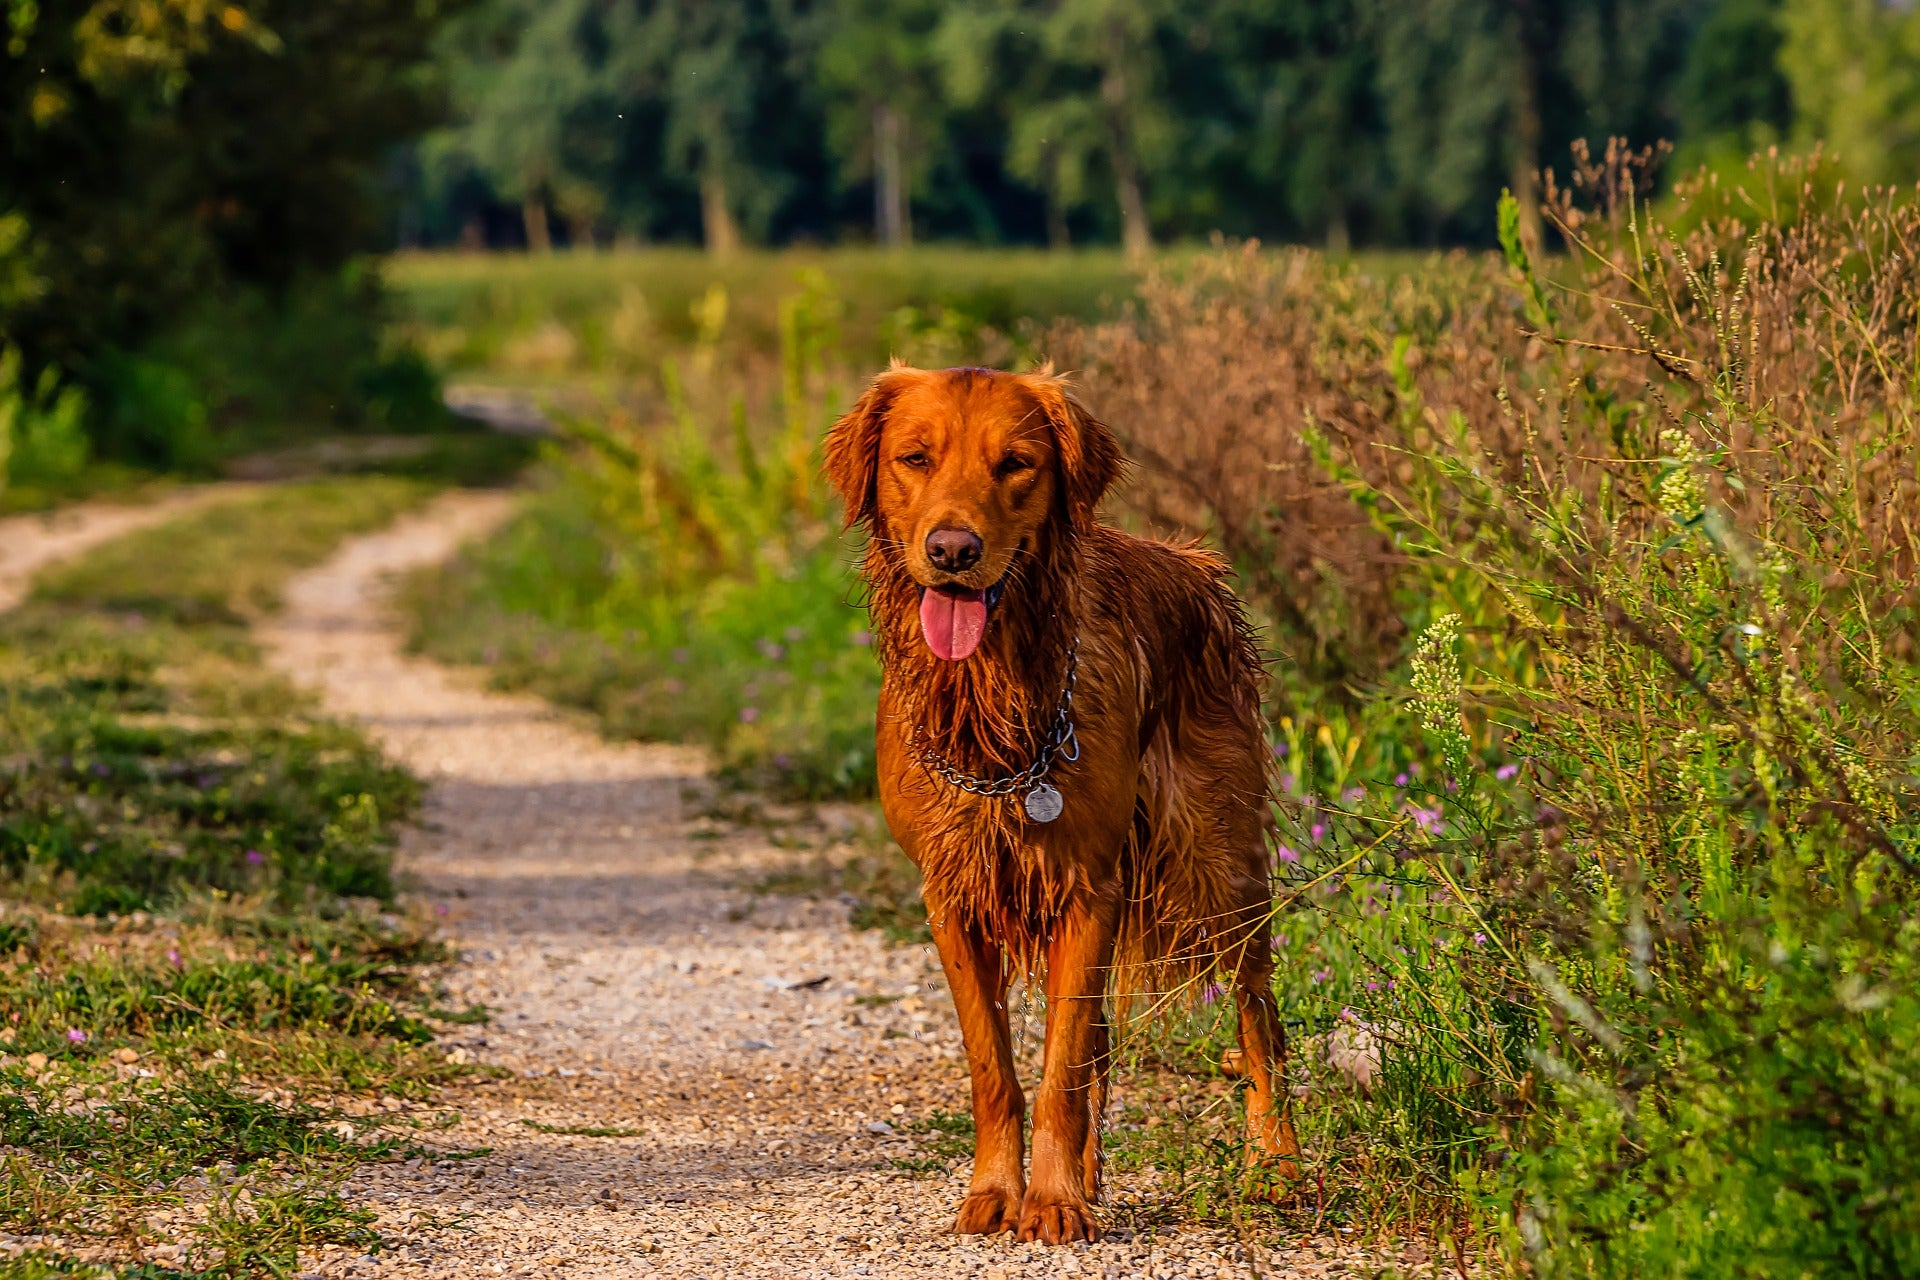 golden retriever standing on dirt path